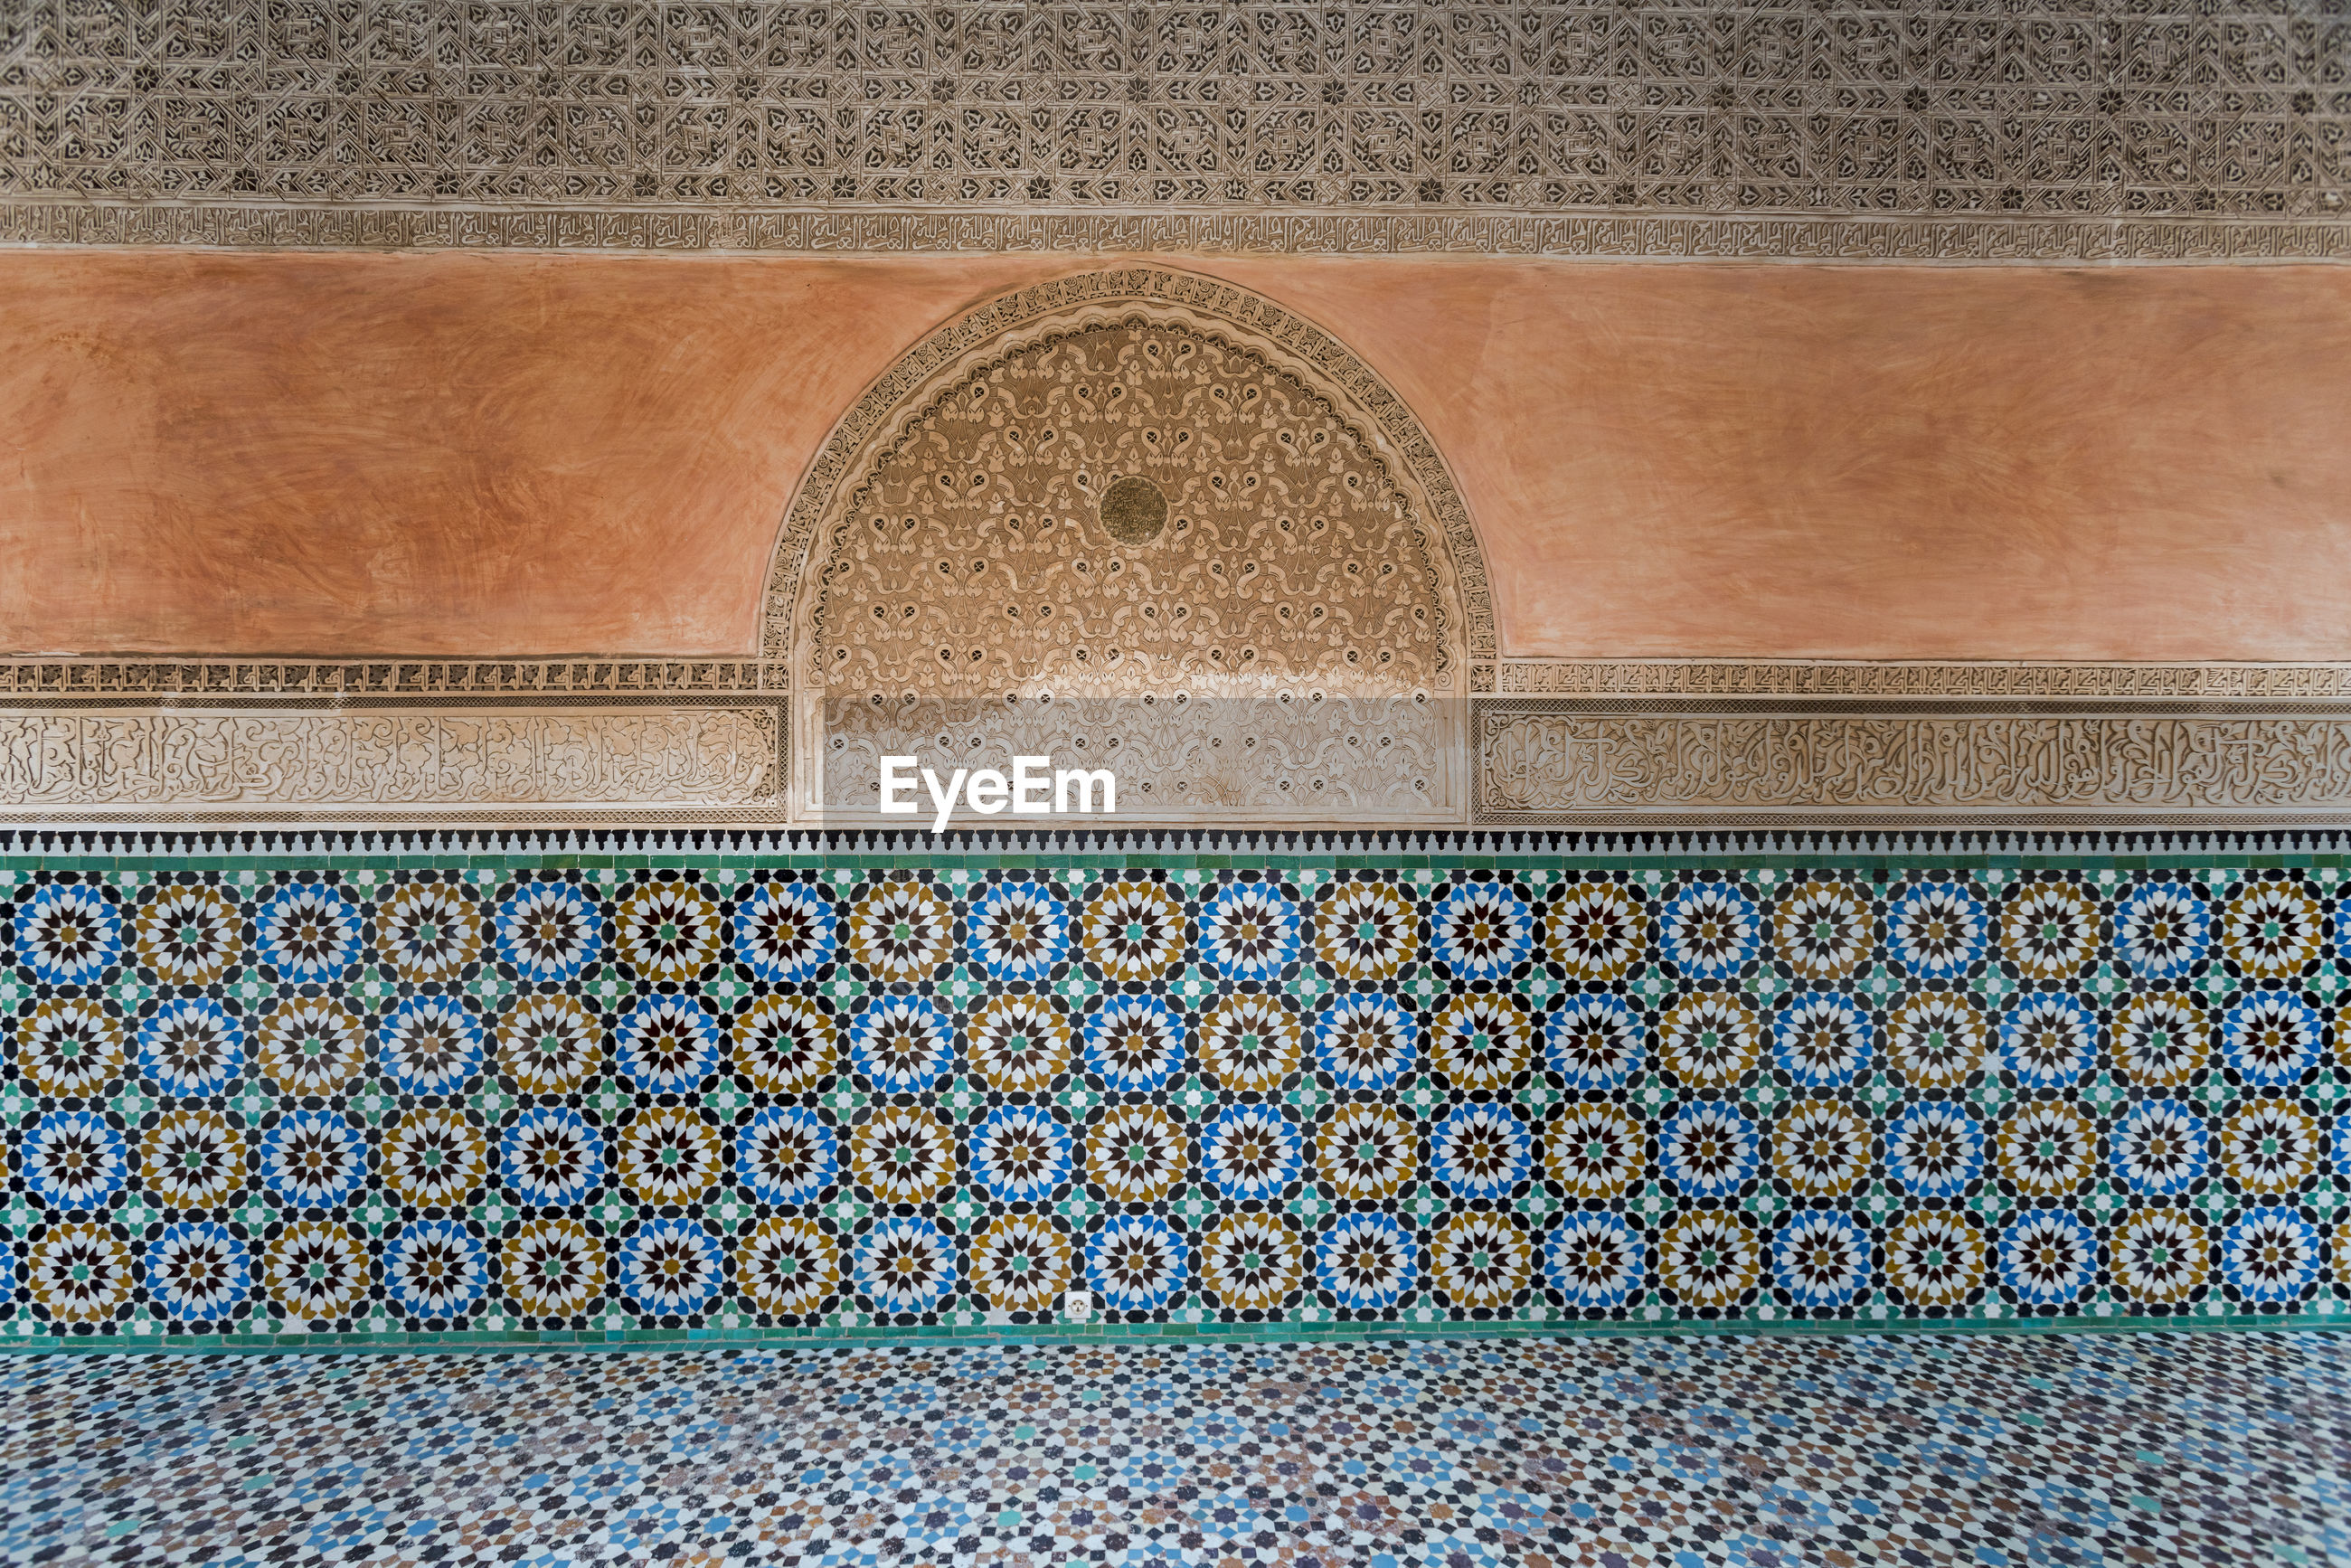 VIEW OF PATTERNED WALL OF BUILDING